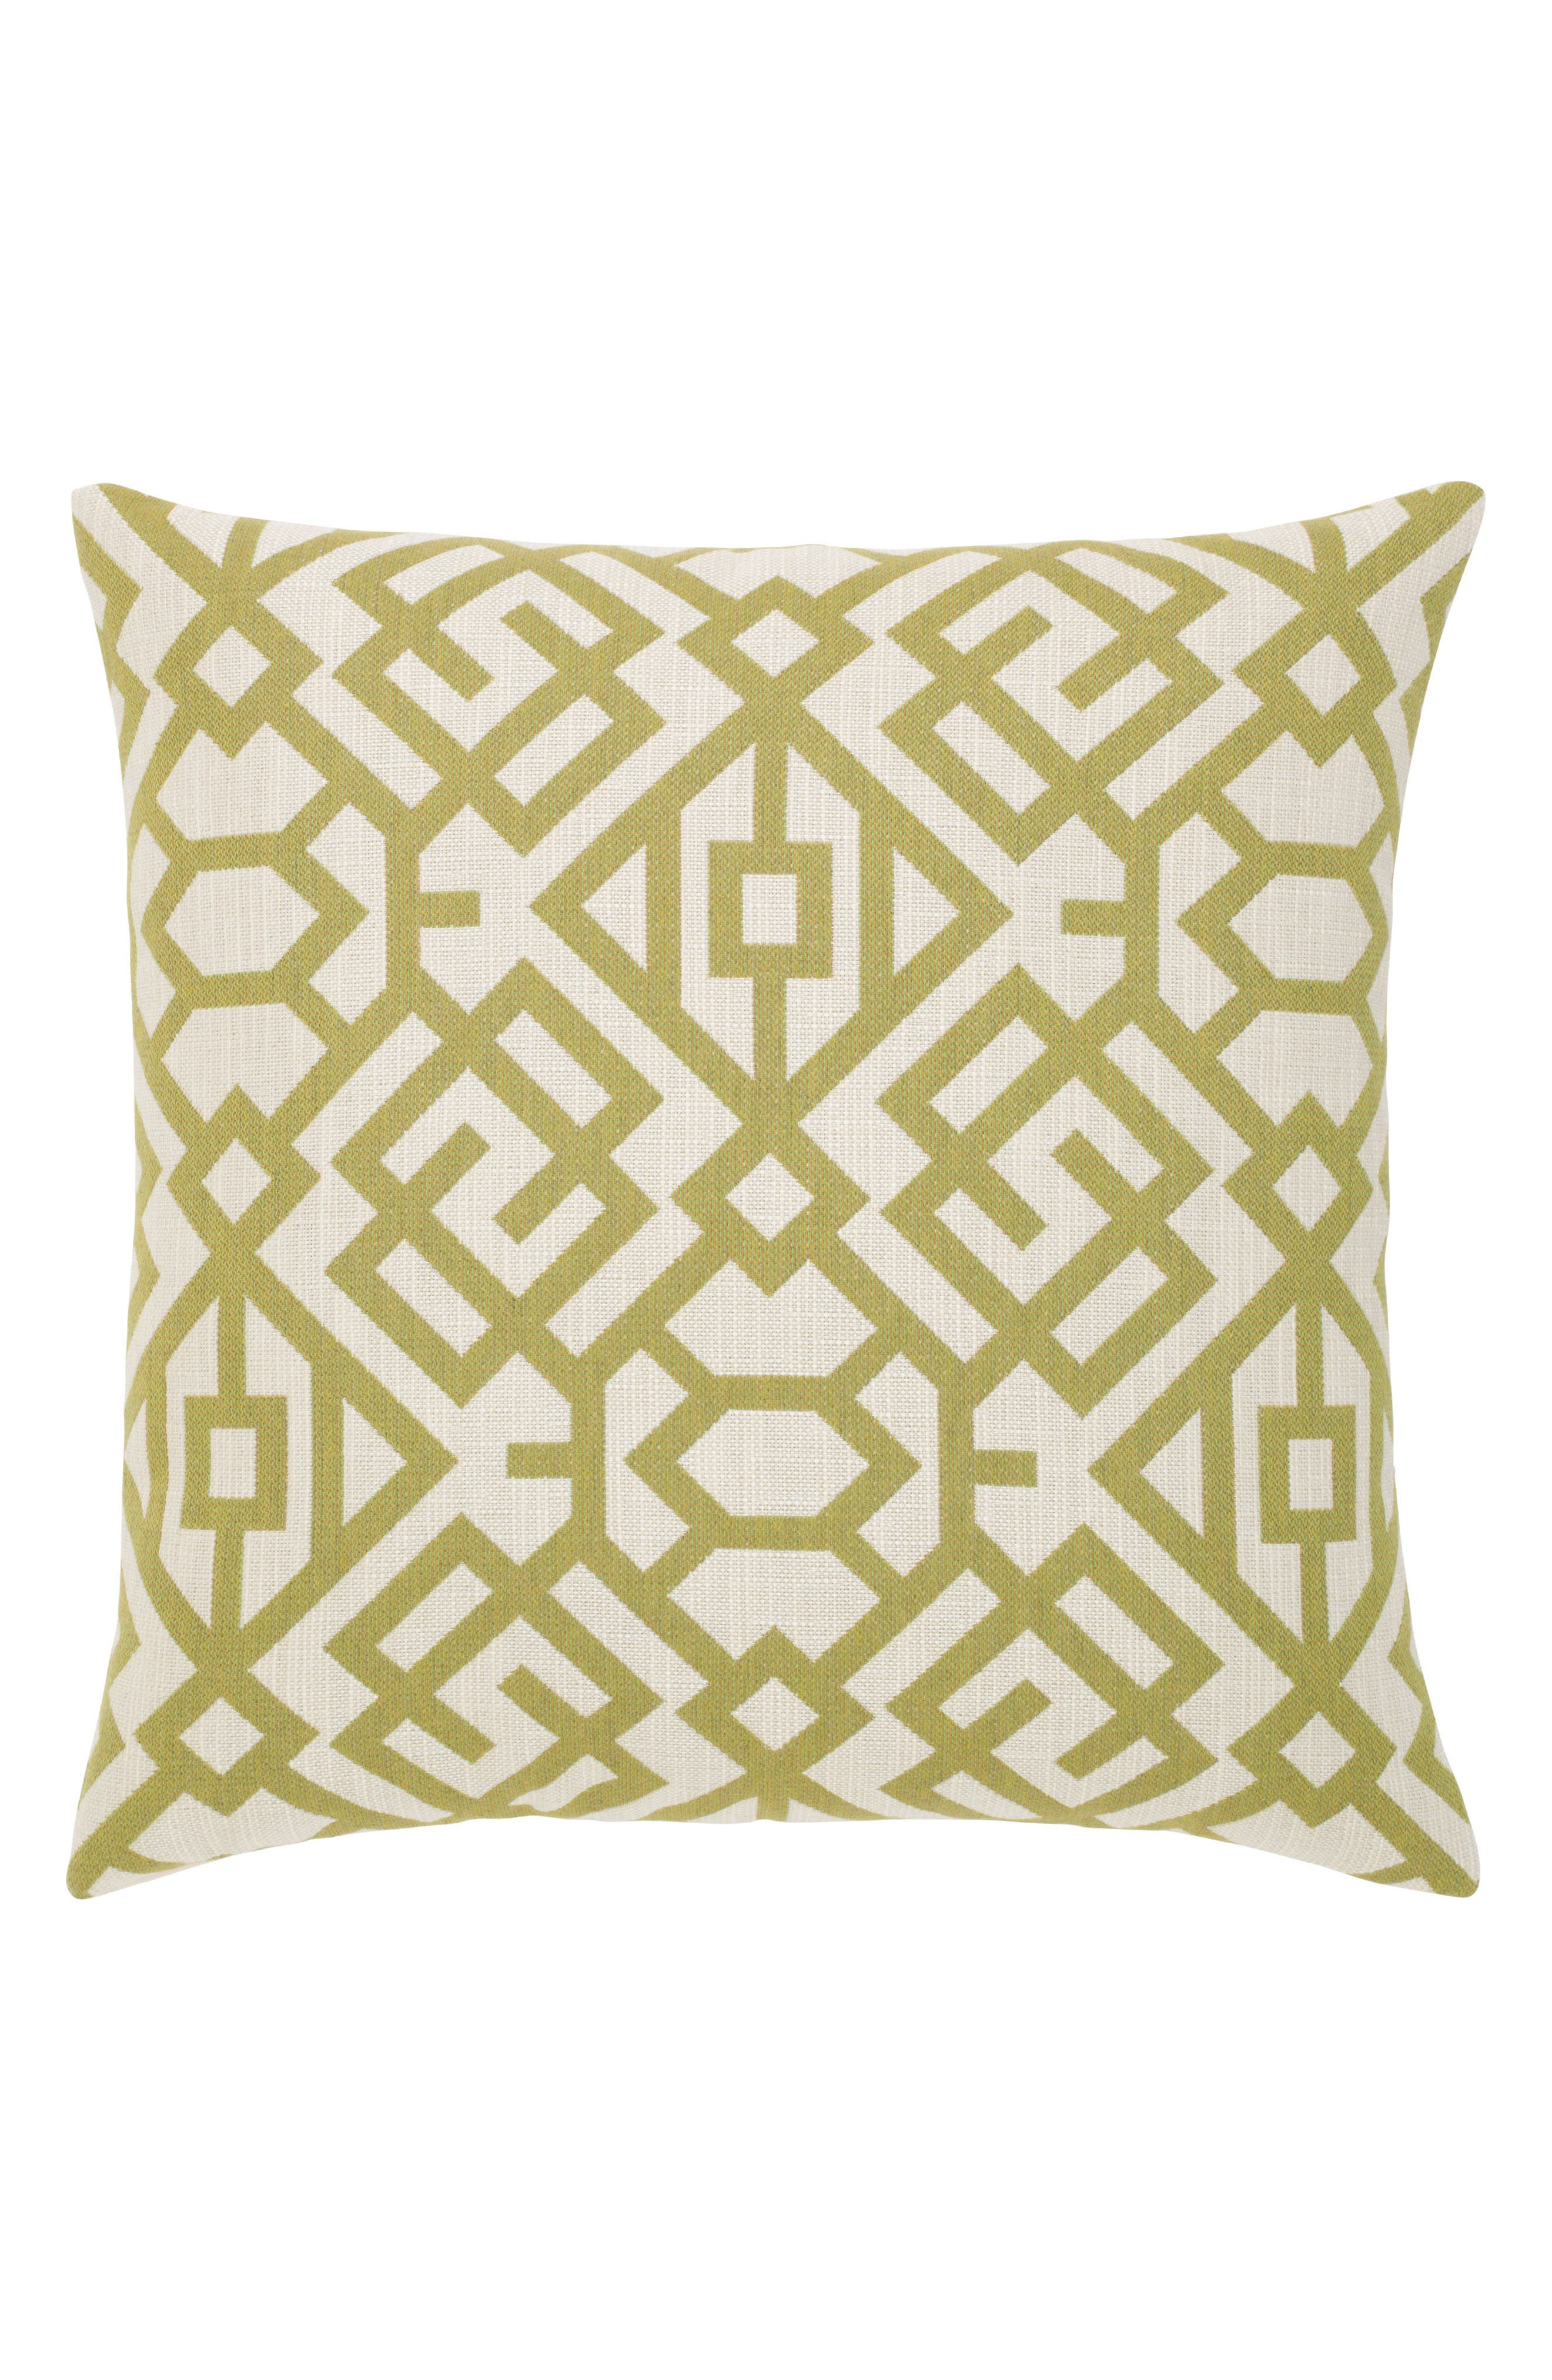 Fern Gate Indoor/Outdoor Accent Pillow,                         Main,                         color, Green